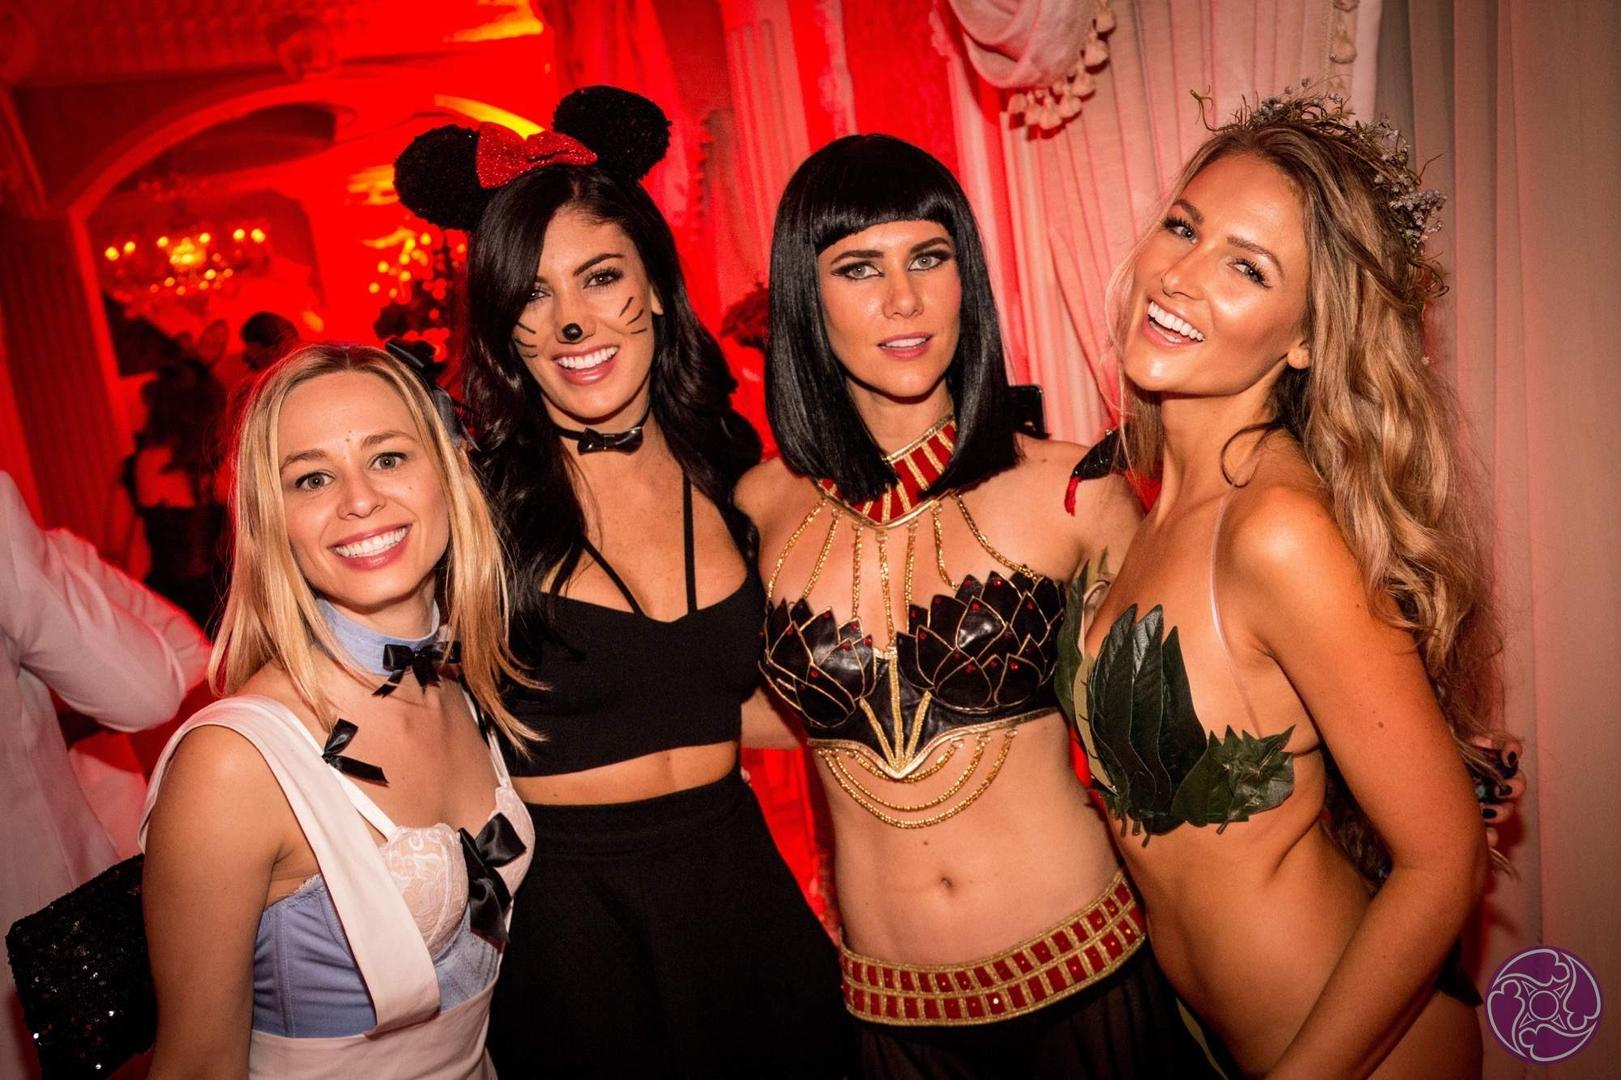 Maxim Halloween VIP Guests. Get on the Guest List at VIP Exclusives.